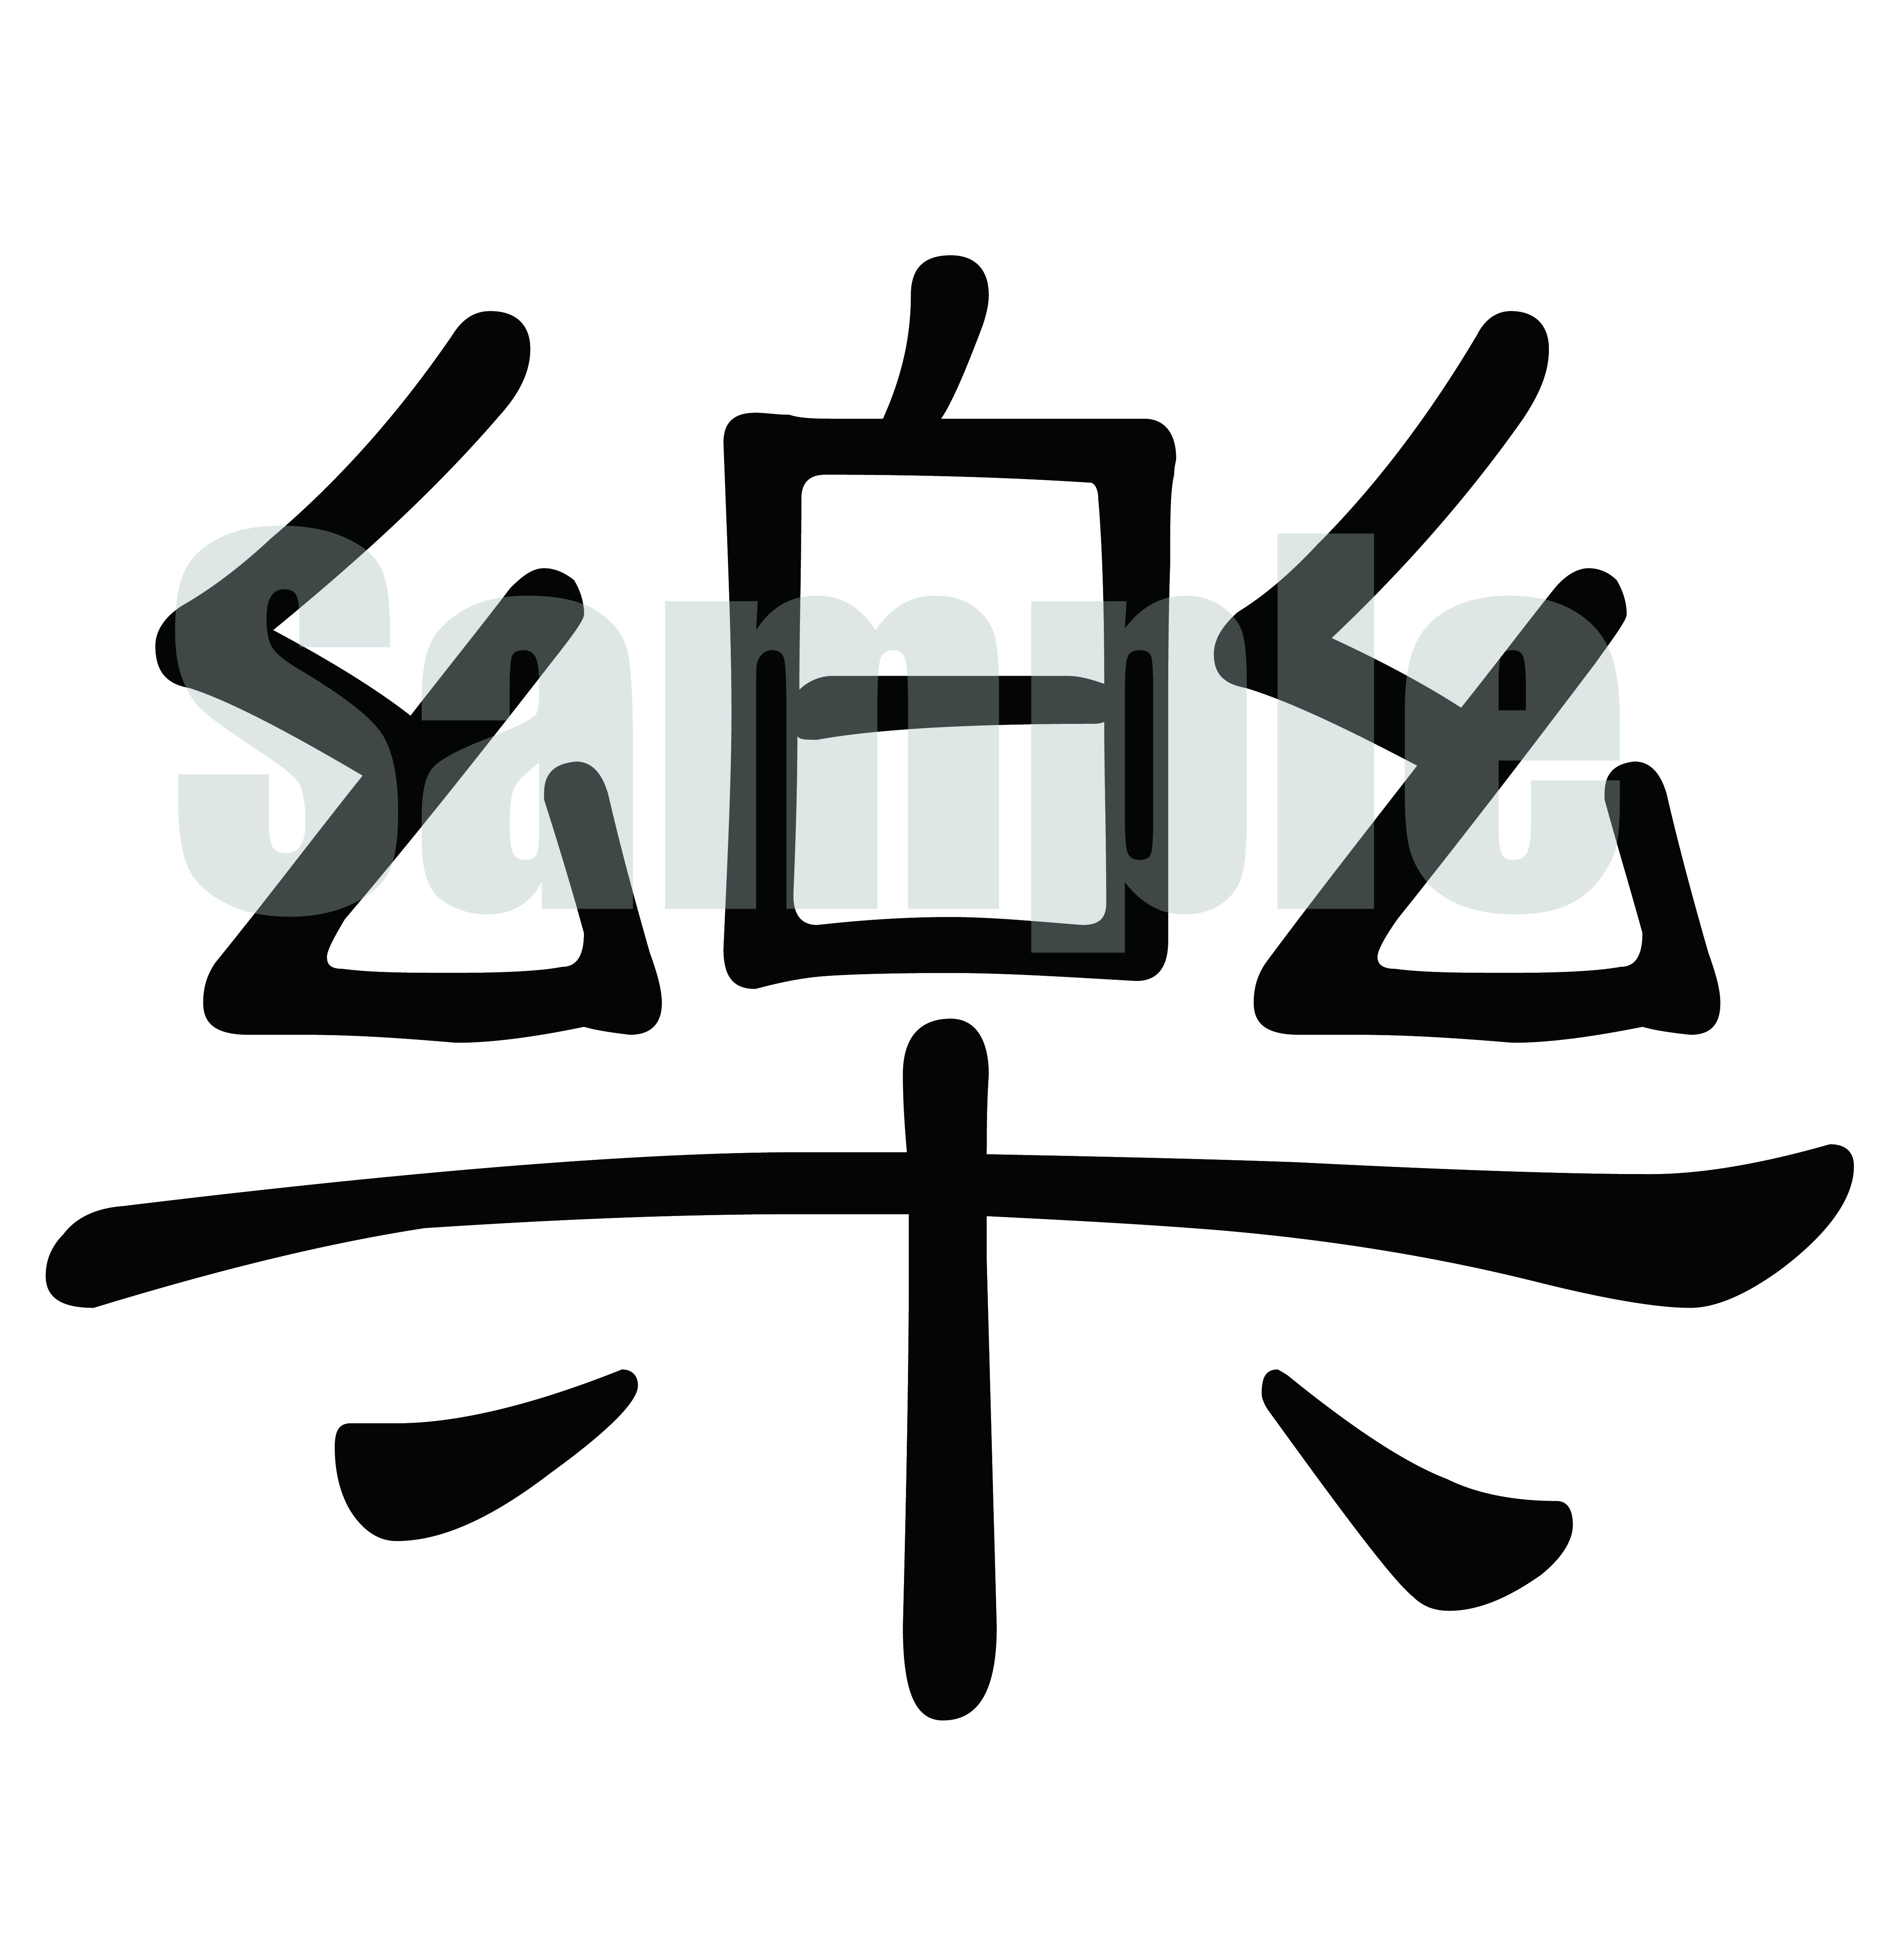 happiness in chinese writing